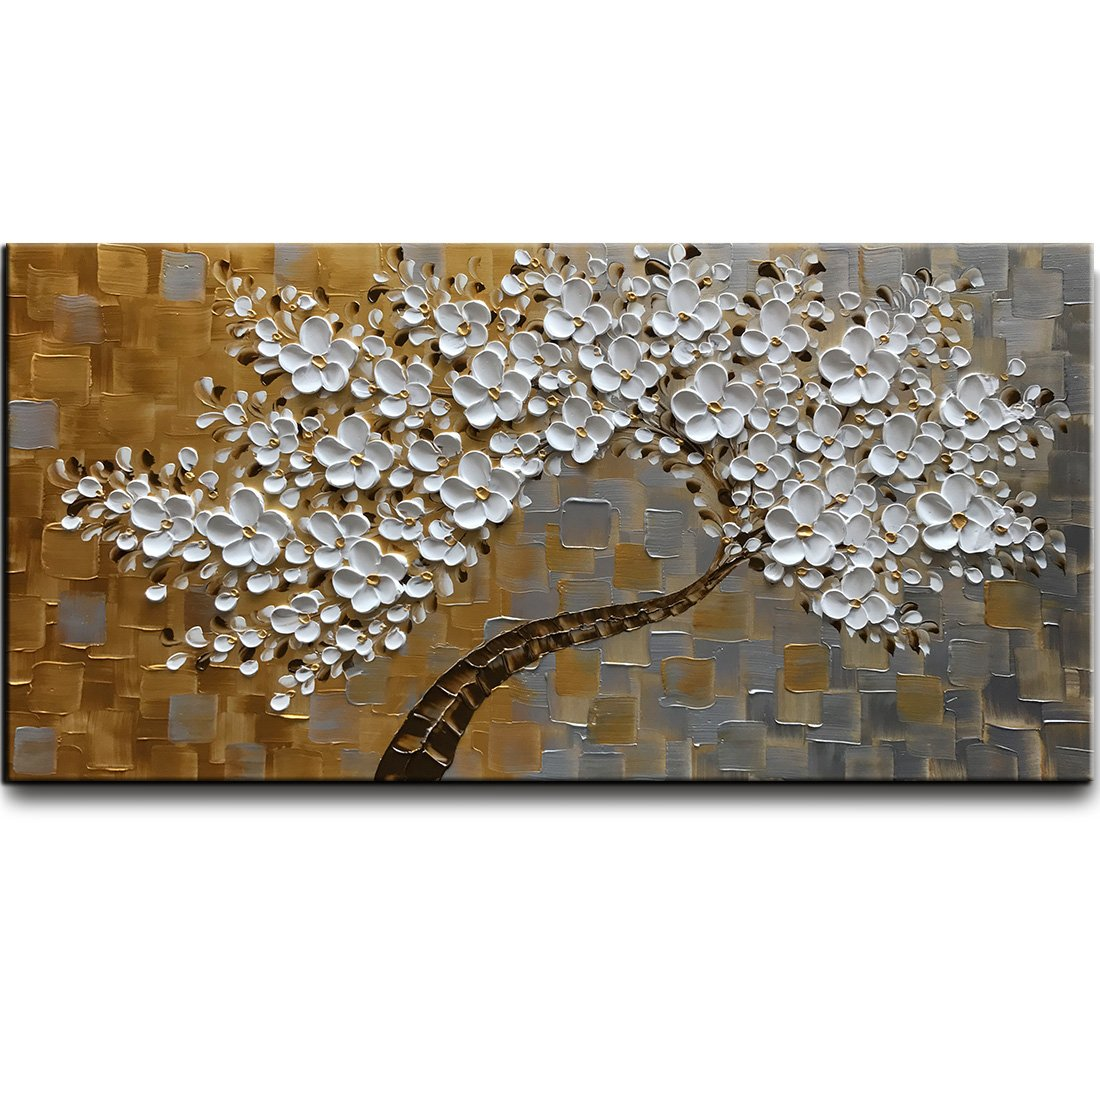 Kate 40x20 inch White Flower Hand Paintings Modern Oil Painting Home Wall Decoration